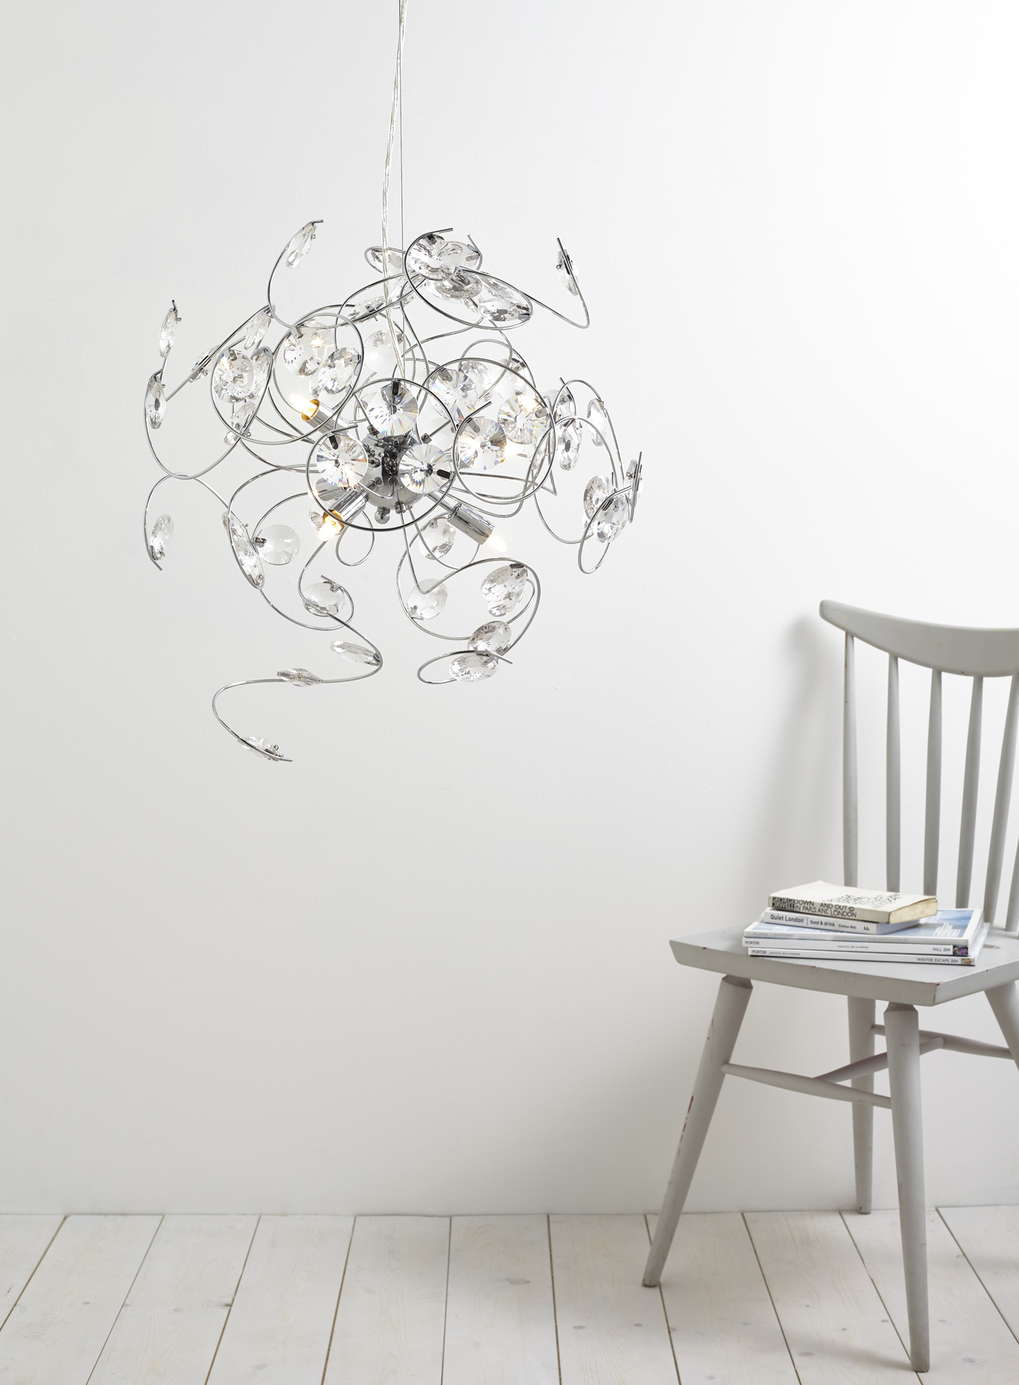 Bhs ceiling light - quench your thirst for beauty and aesthetic genius all in one go Warisan ...